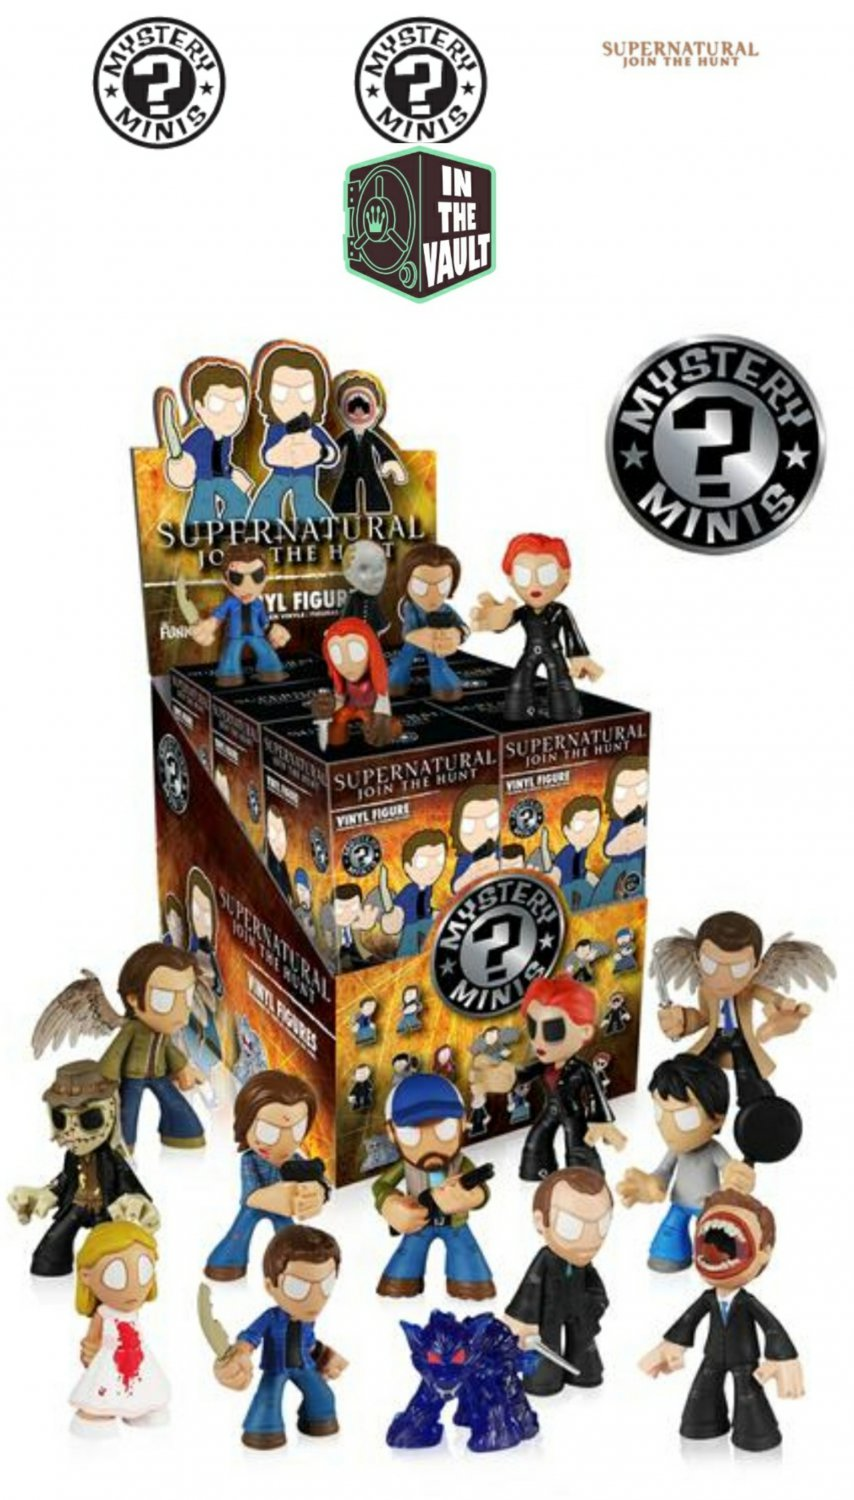 FUNKO Supernatural Mystery Minis Blind Box Vinyl Mini Figures - Complete Set of 17 (Vaulted)